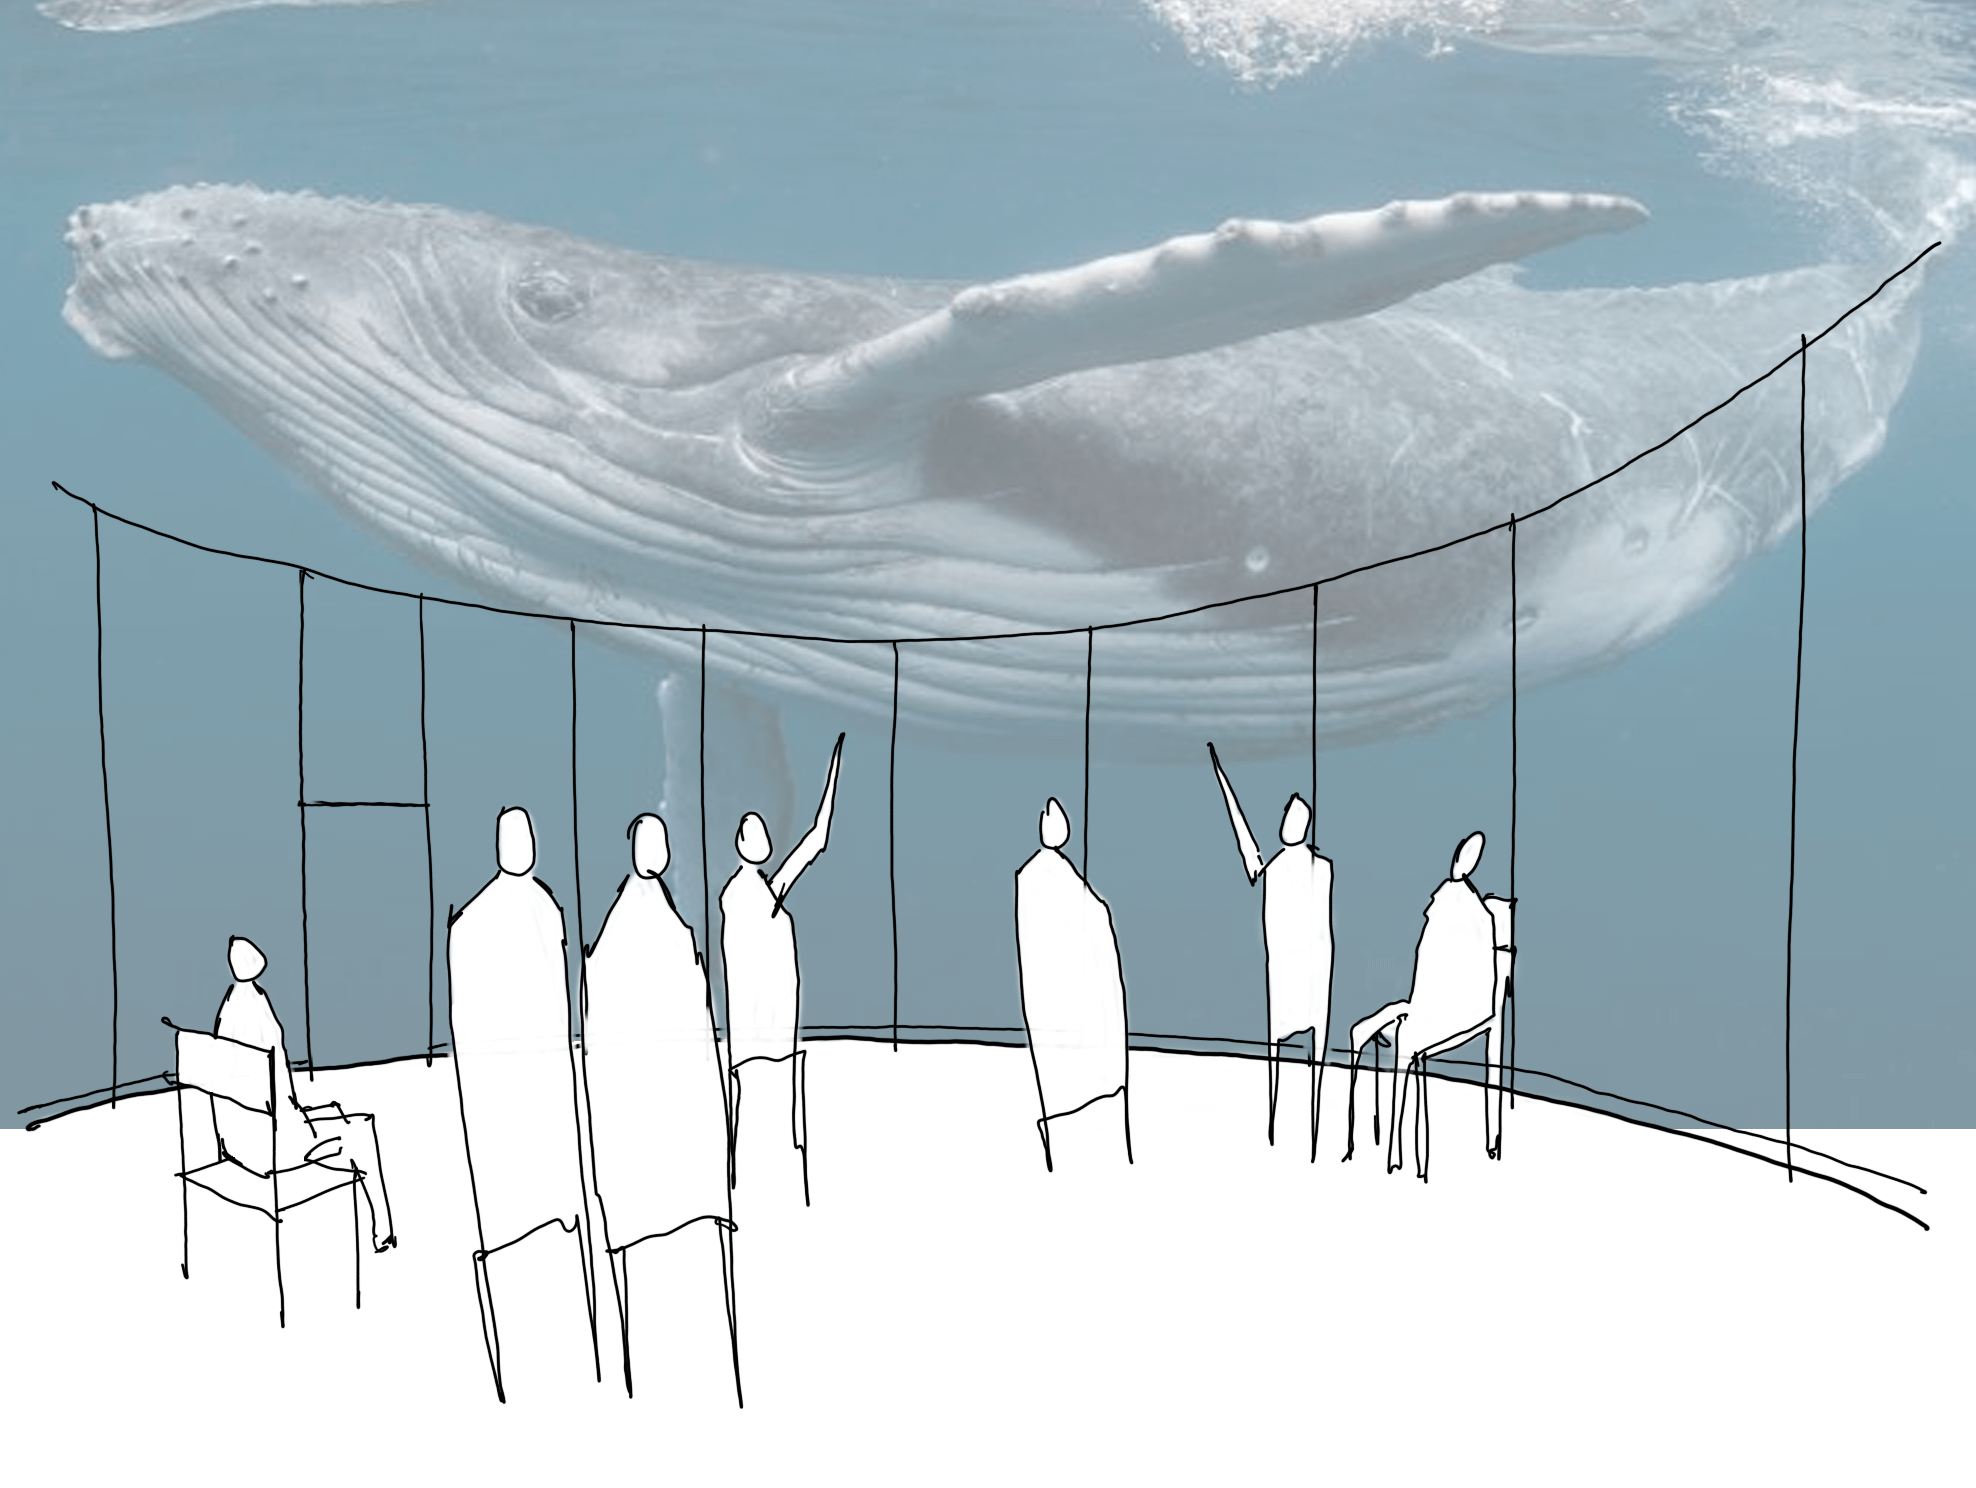 sketch of people in a room with a humpback whale in the ocean projected on the walls and ceiling